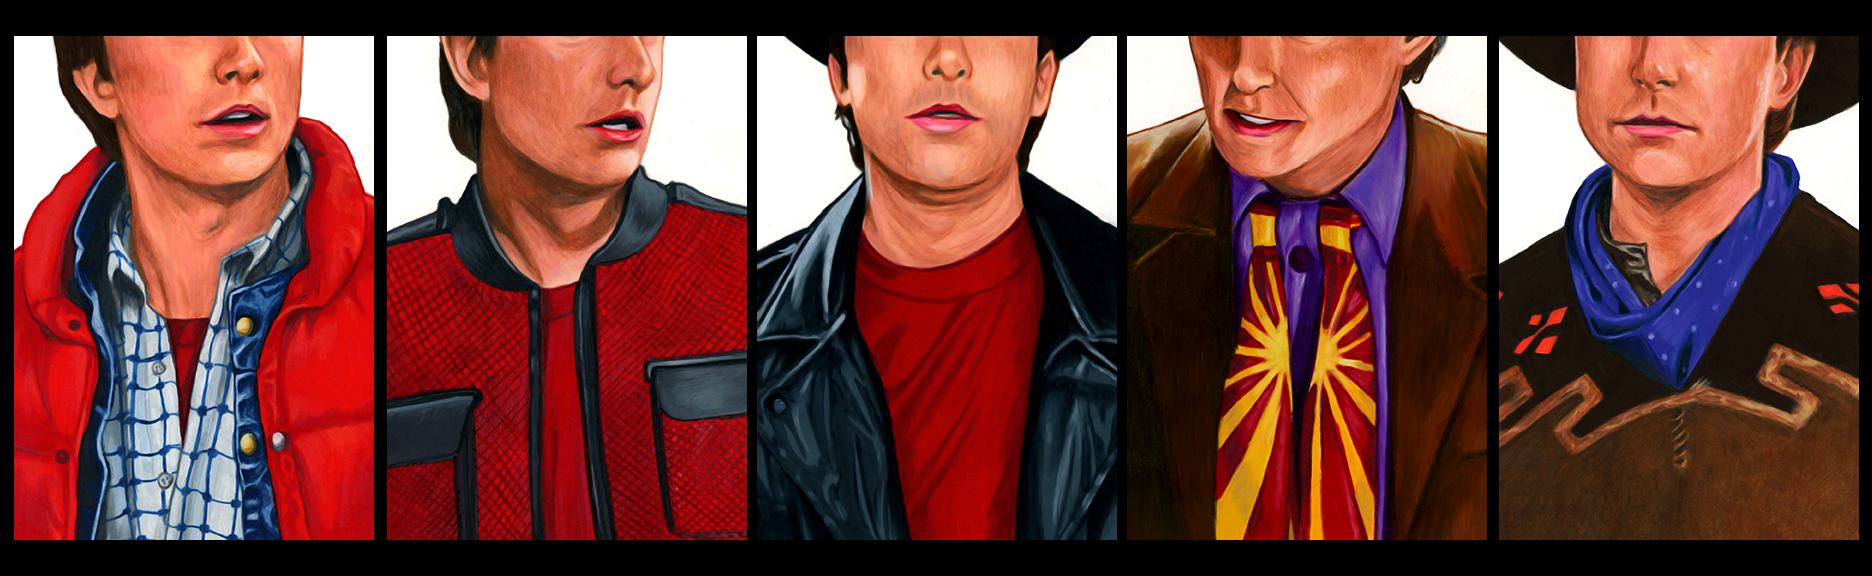 The Marty McFly Collection